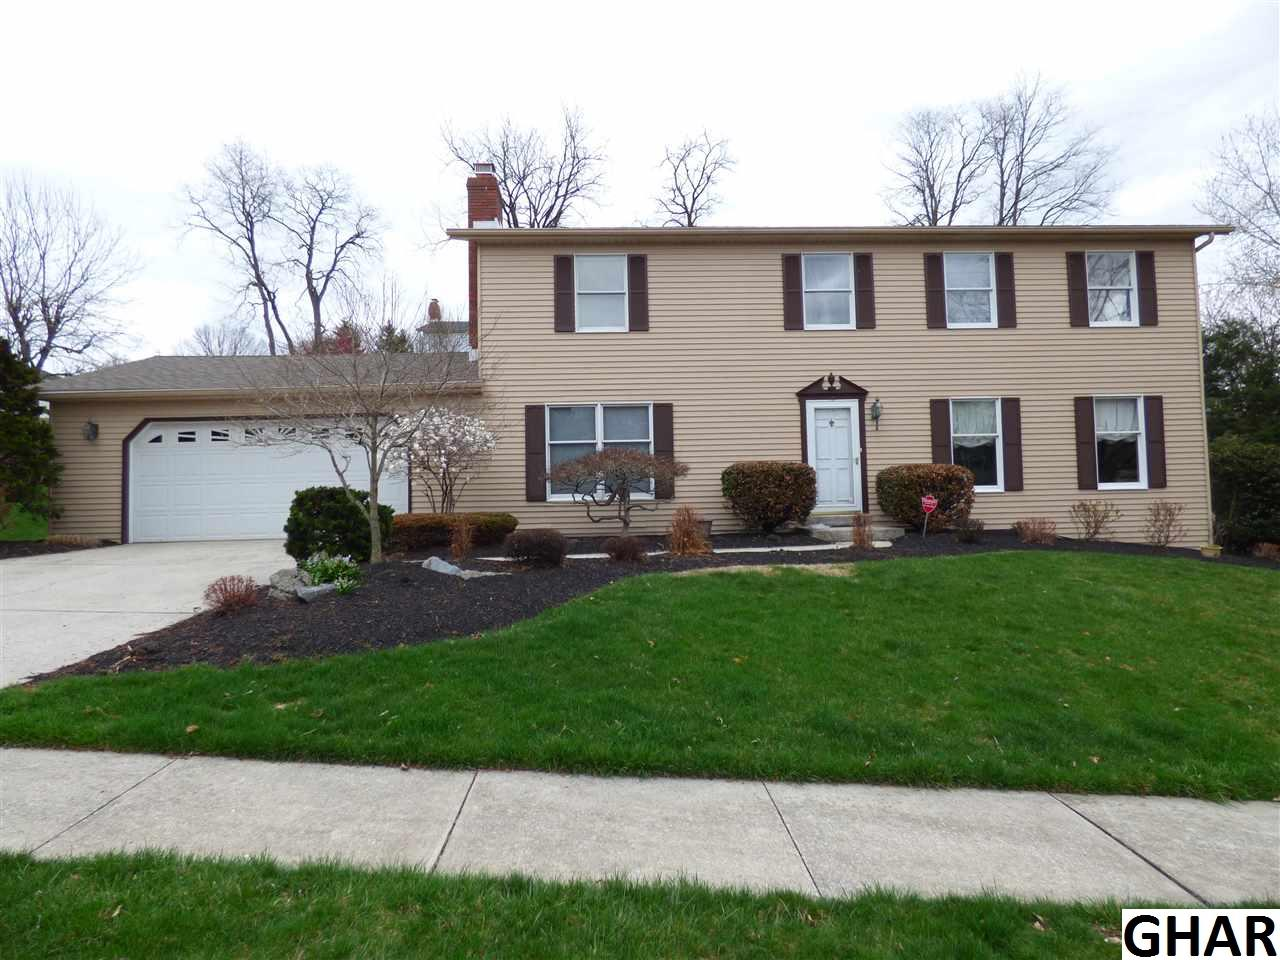 141 Fineview Rd, Camp Hill, PA 17011